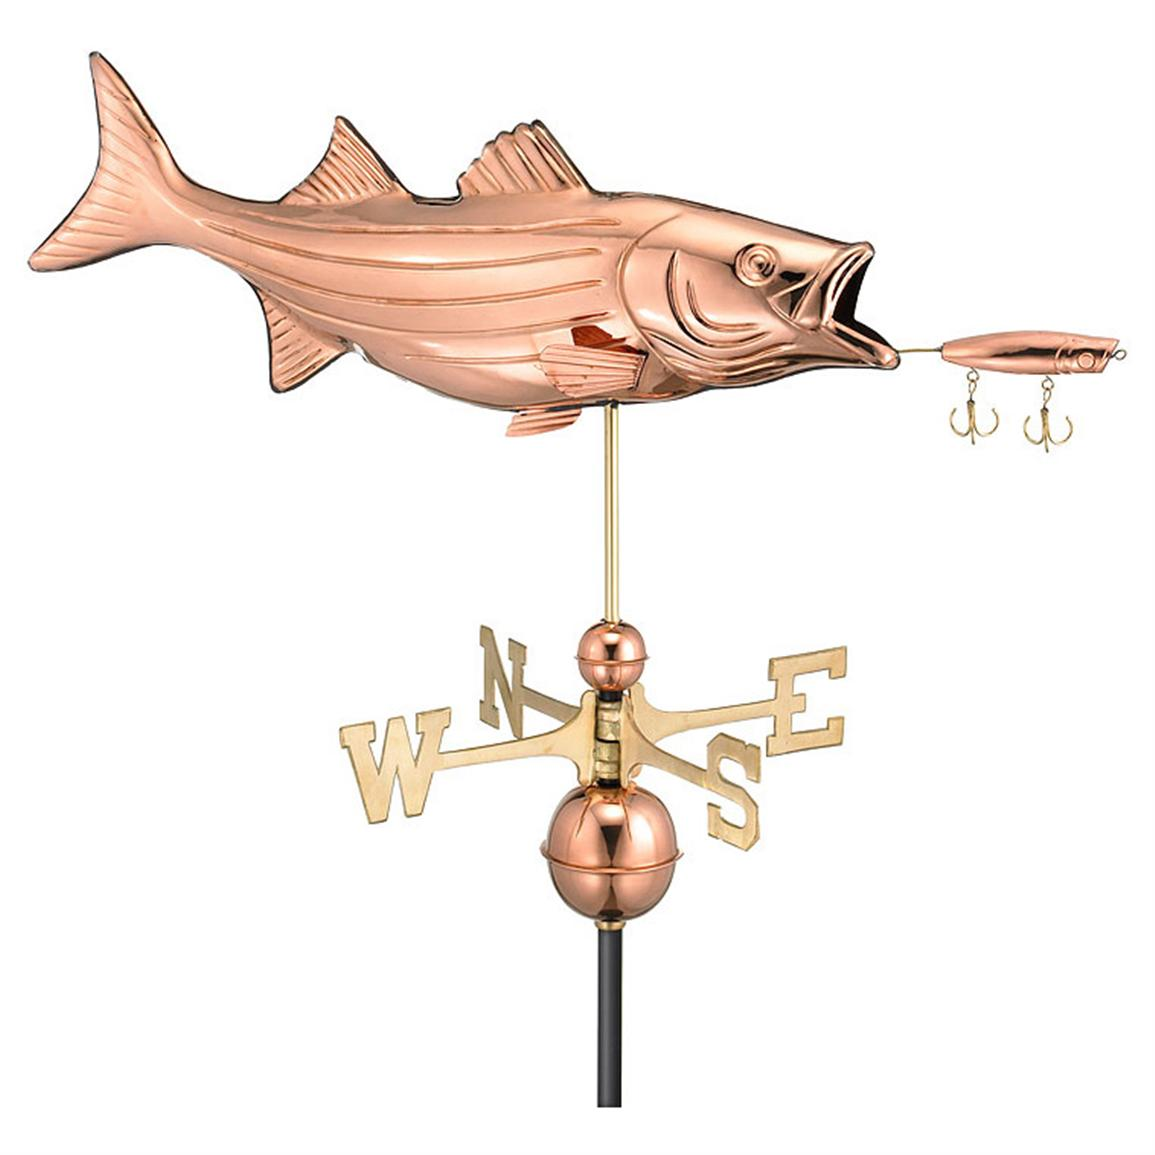 Bass and Lure Weathervane, 35x16 inch h.